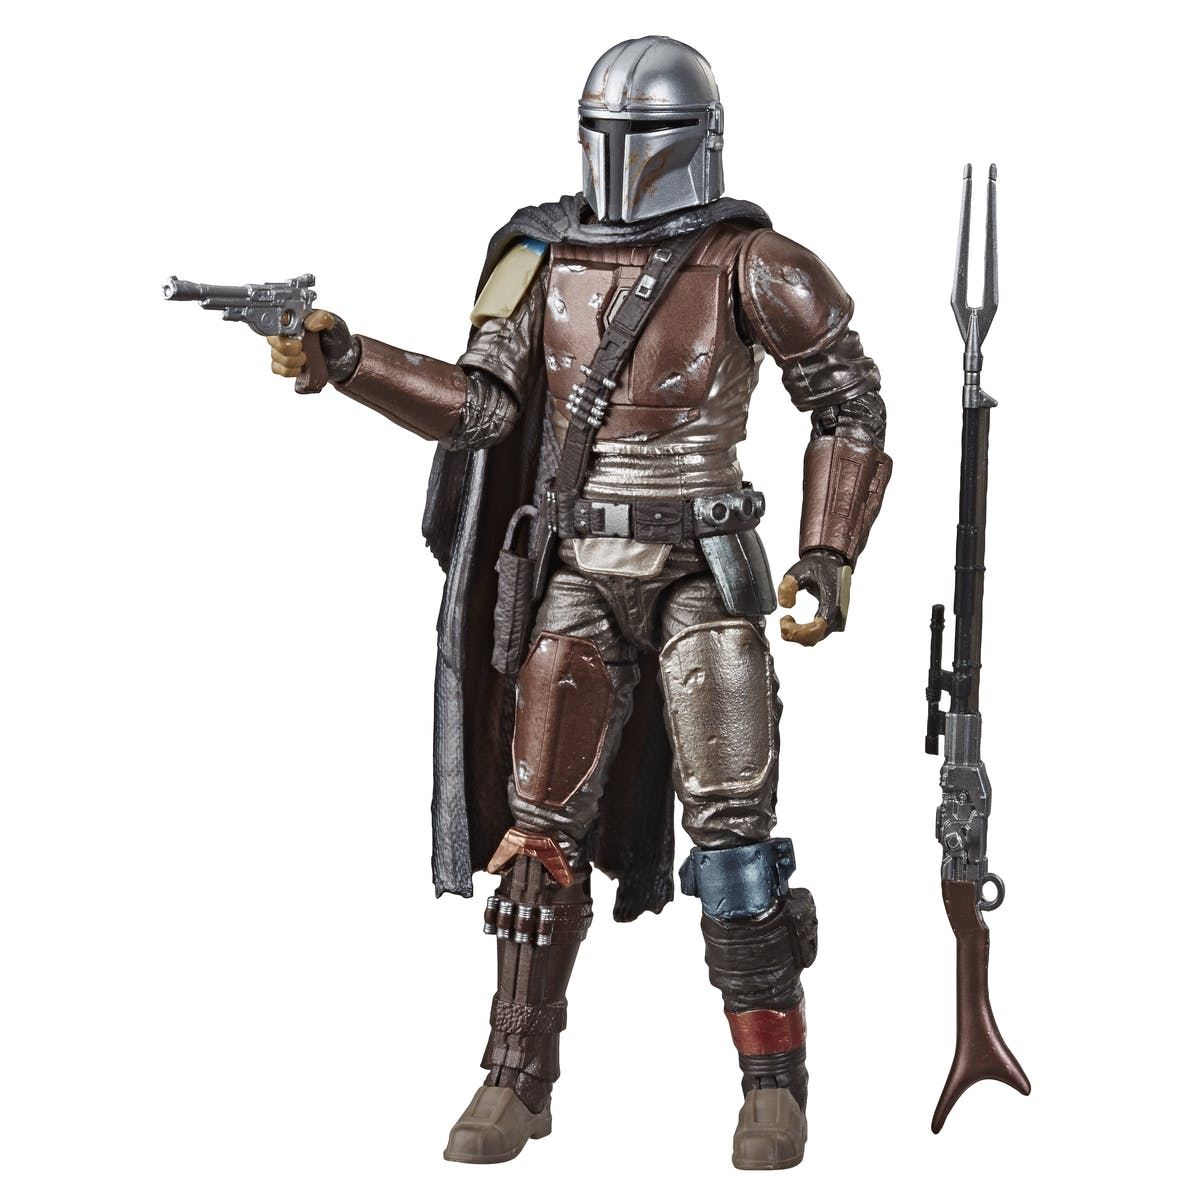 'The Mandalorian' figures aren't toys, they're must-have desk decor